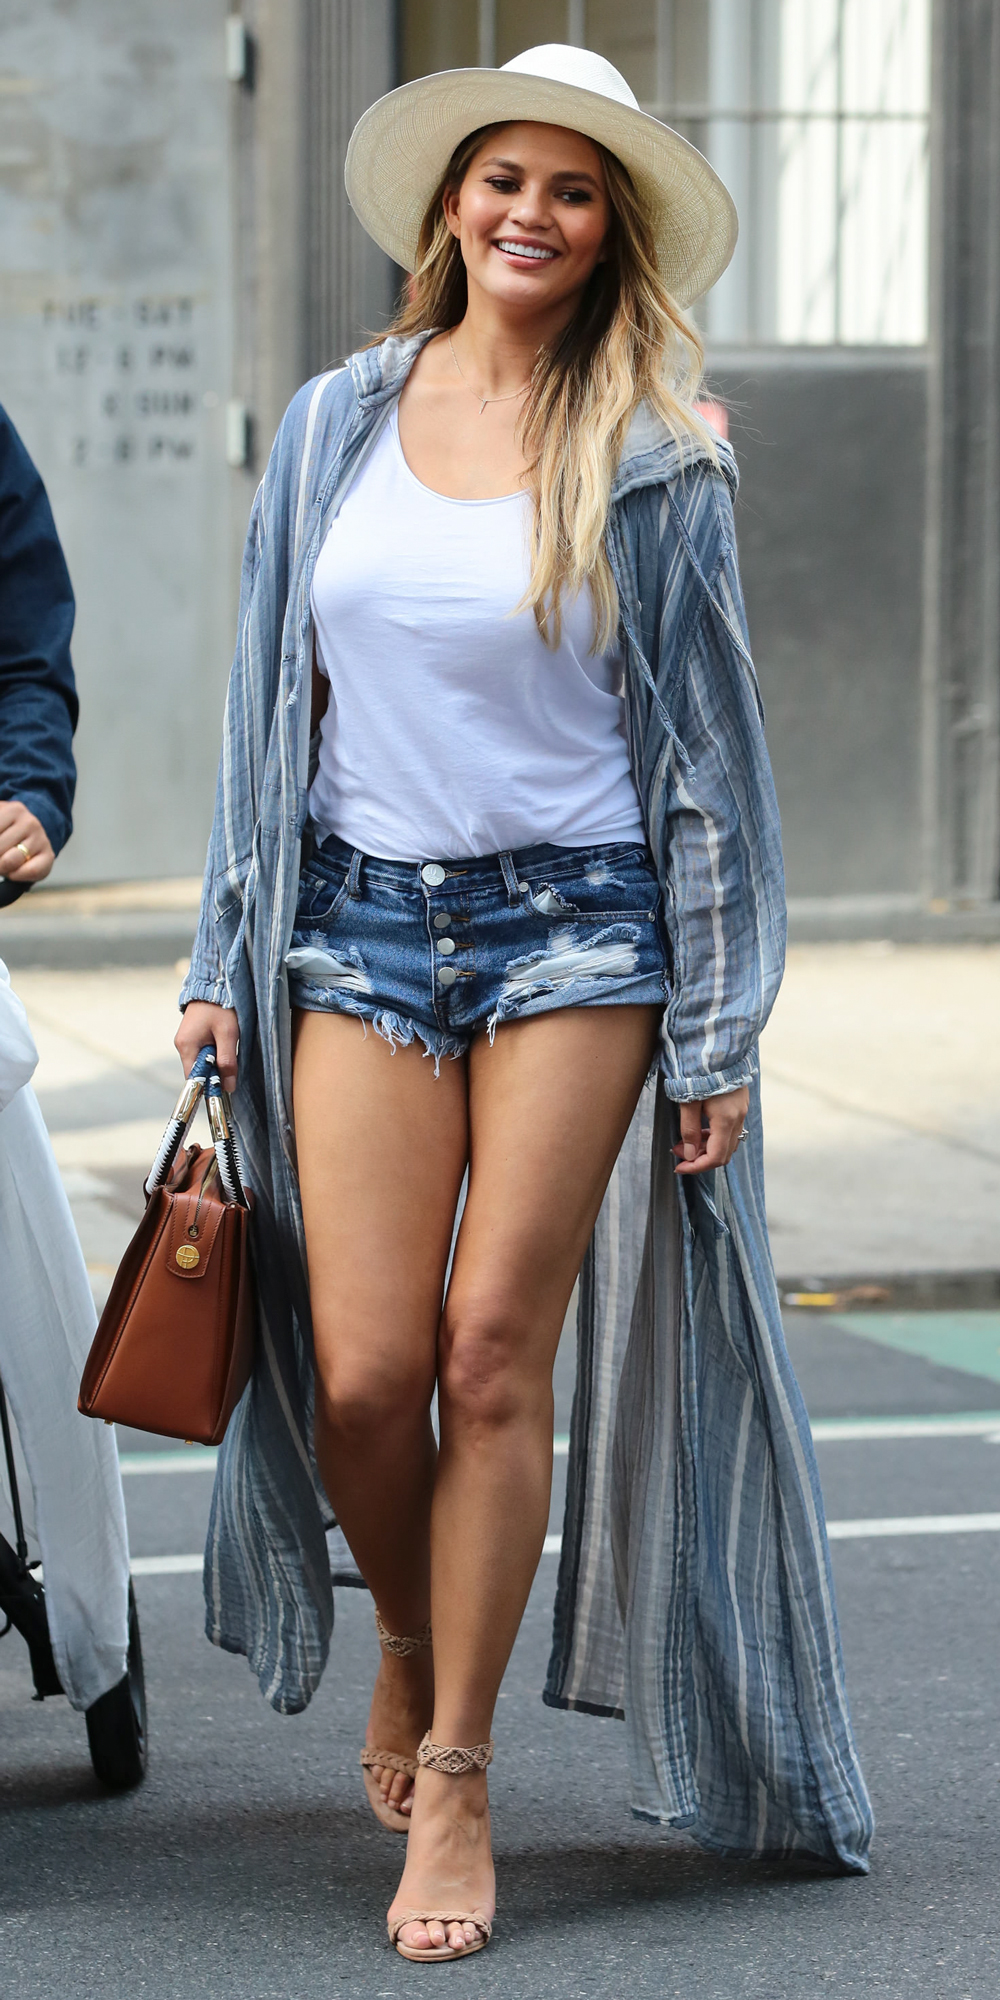 Chrissy Teigen Shows Off Her Mile-Long Legs, Hits N.Y.C. Streets in Short Shorts